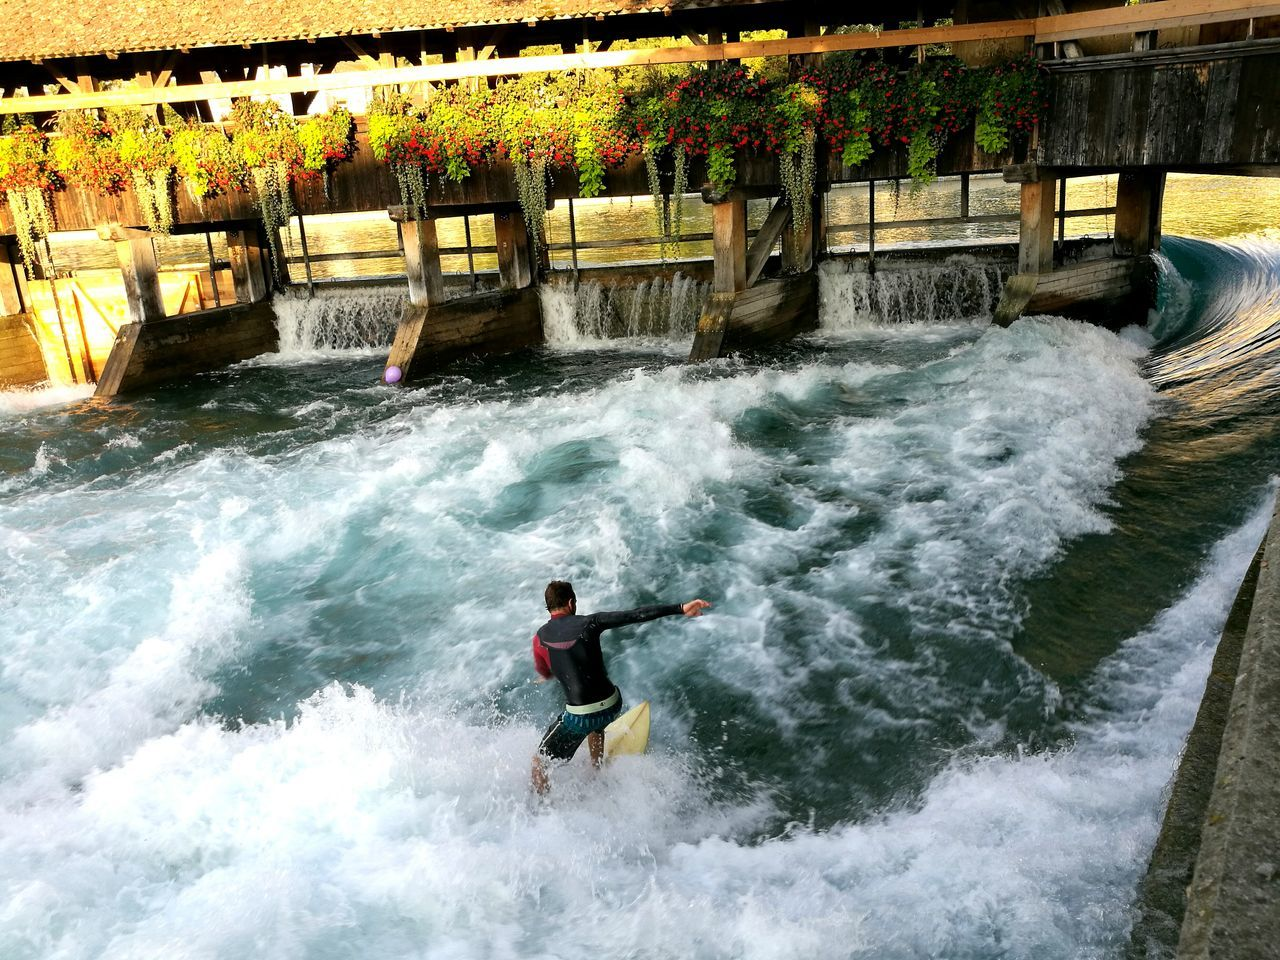 motion, waterfall, day, water, adventure, wave, rapid, speed, one person, one man only, outdoors, nature, river, power in nature, full length, beauty in nature, men, only men, extreme sports, adults only, adult, people